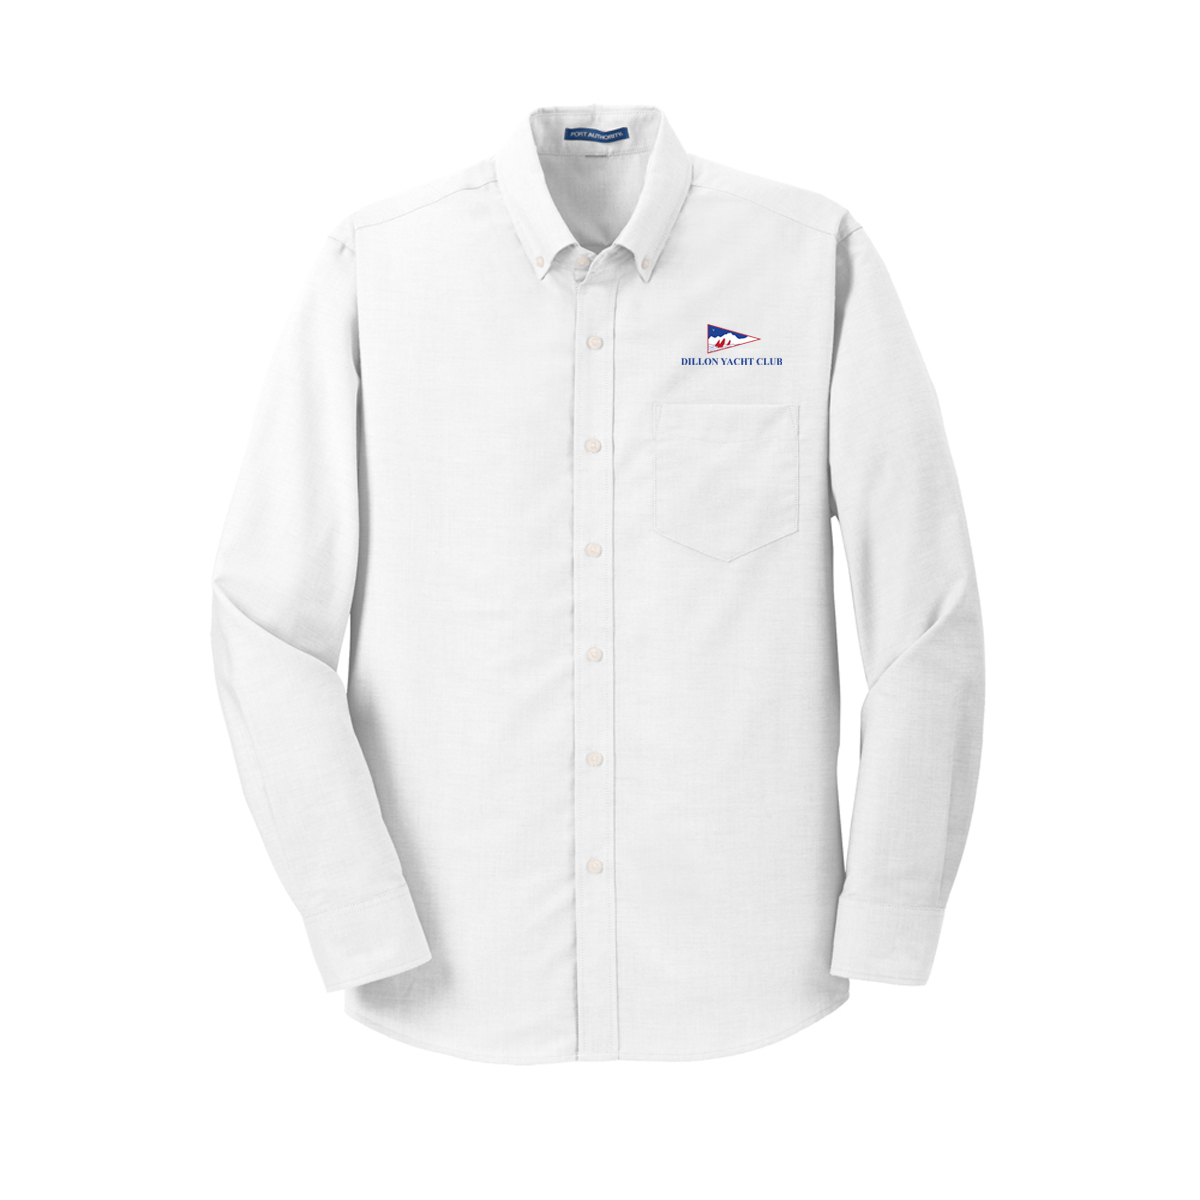 Dillon Yacht CLub - M'S OXFORD SHIRT